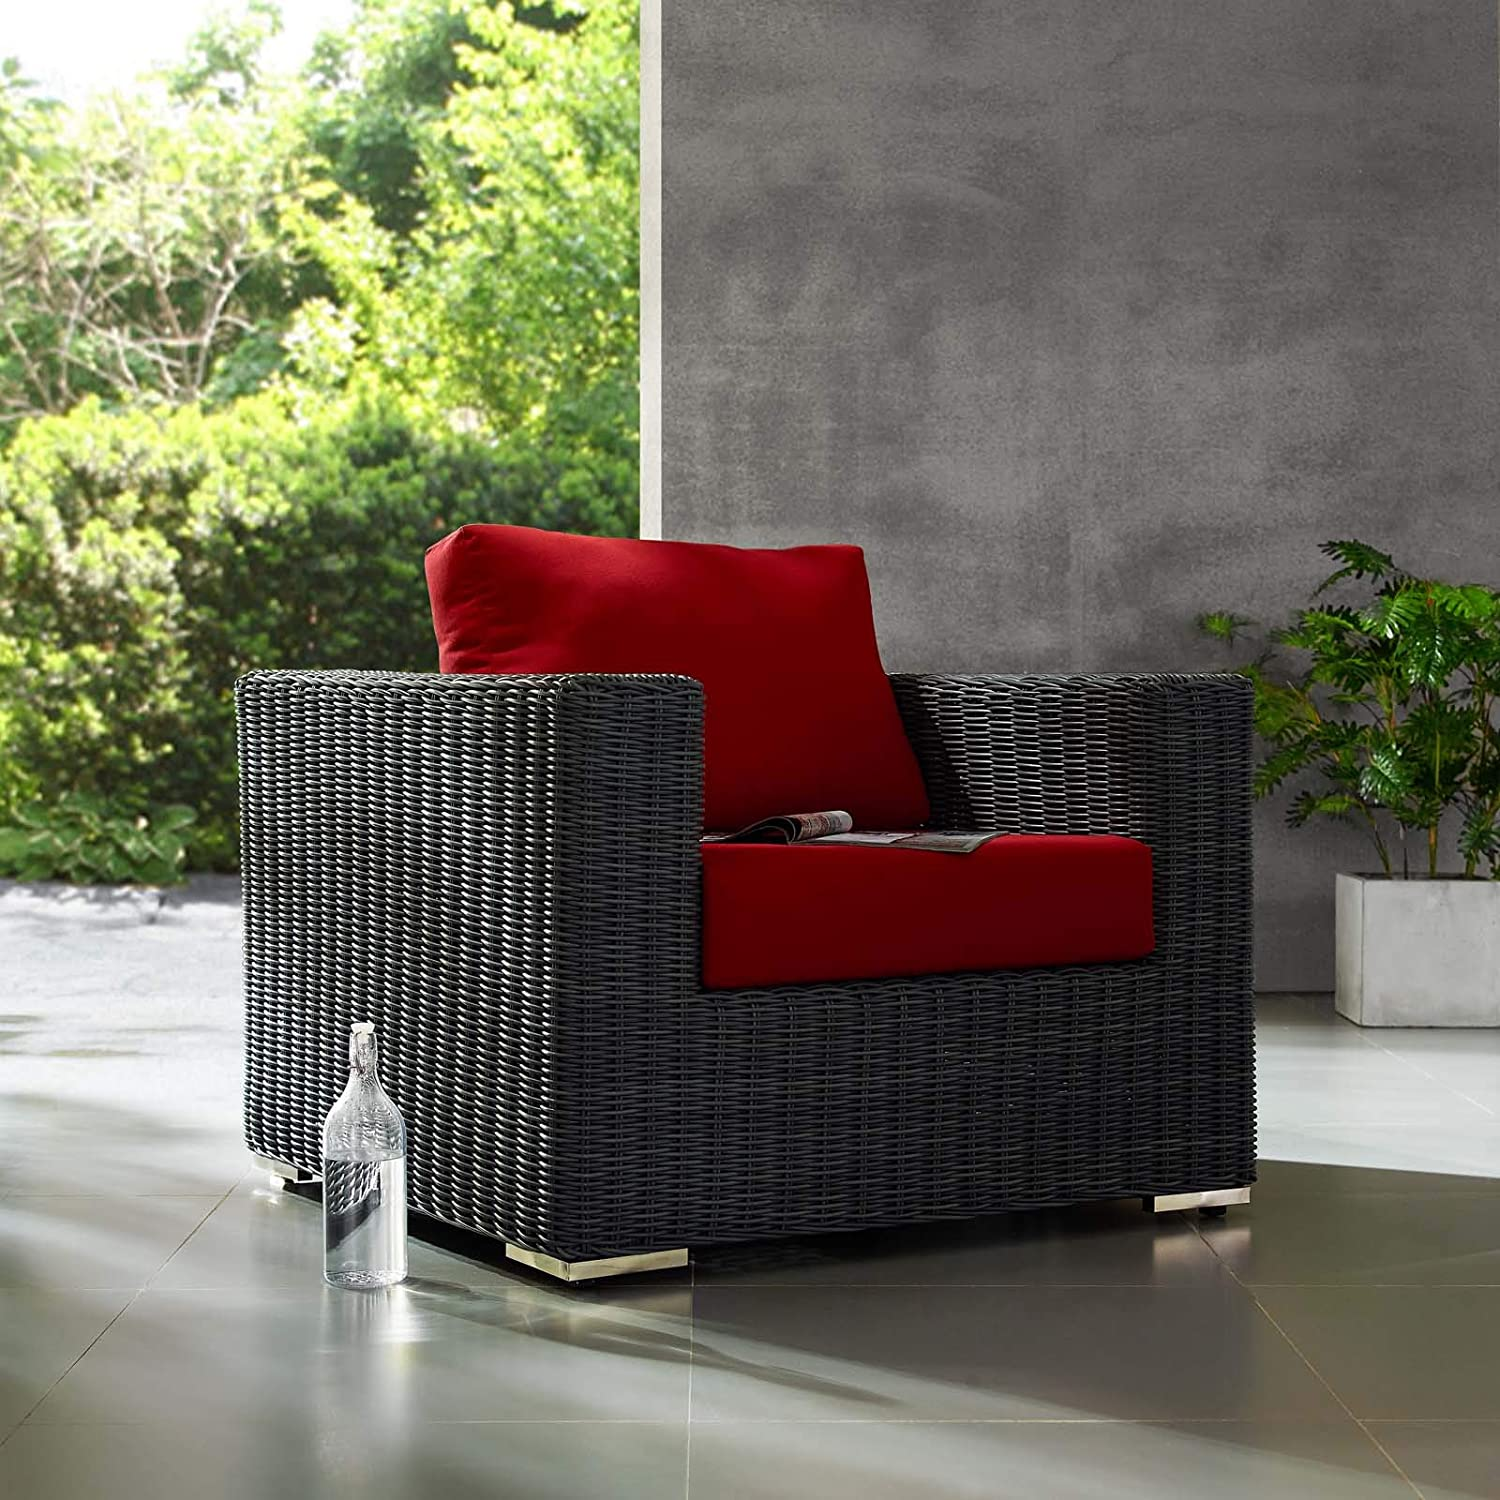 Amazon.com: Sillón moderno y contemporáneo para patio ...